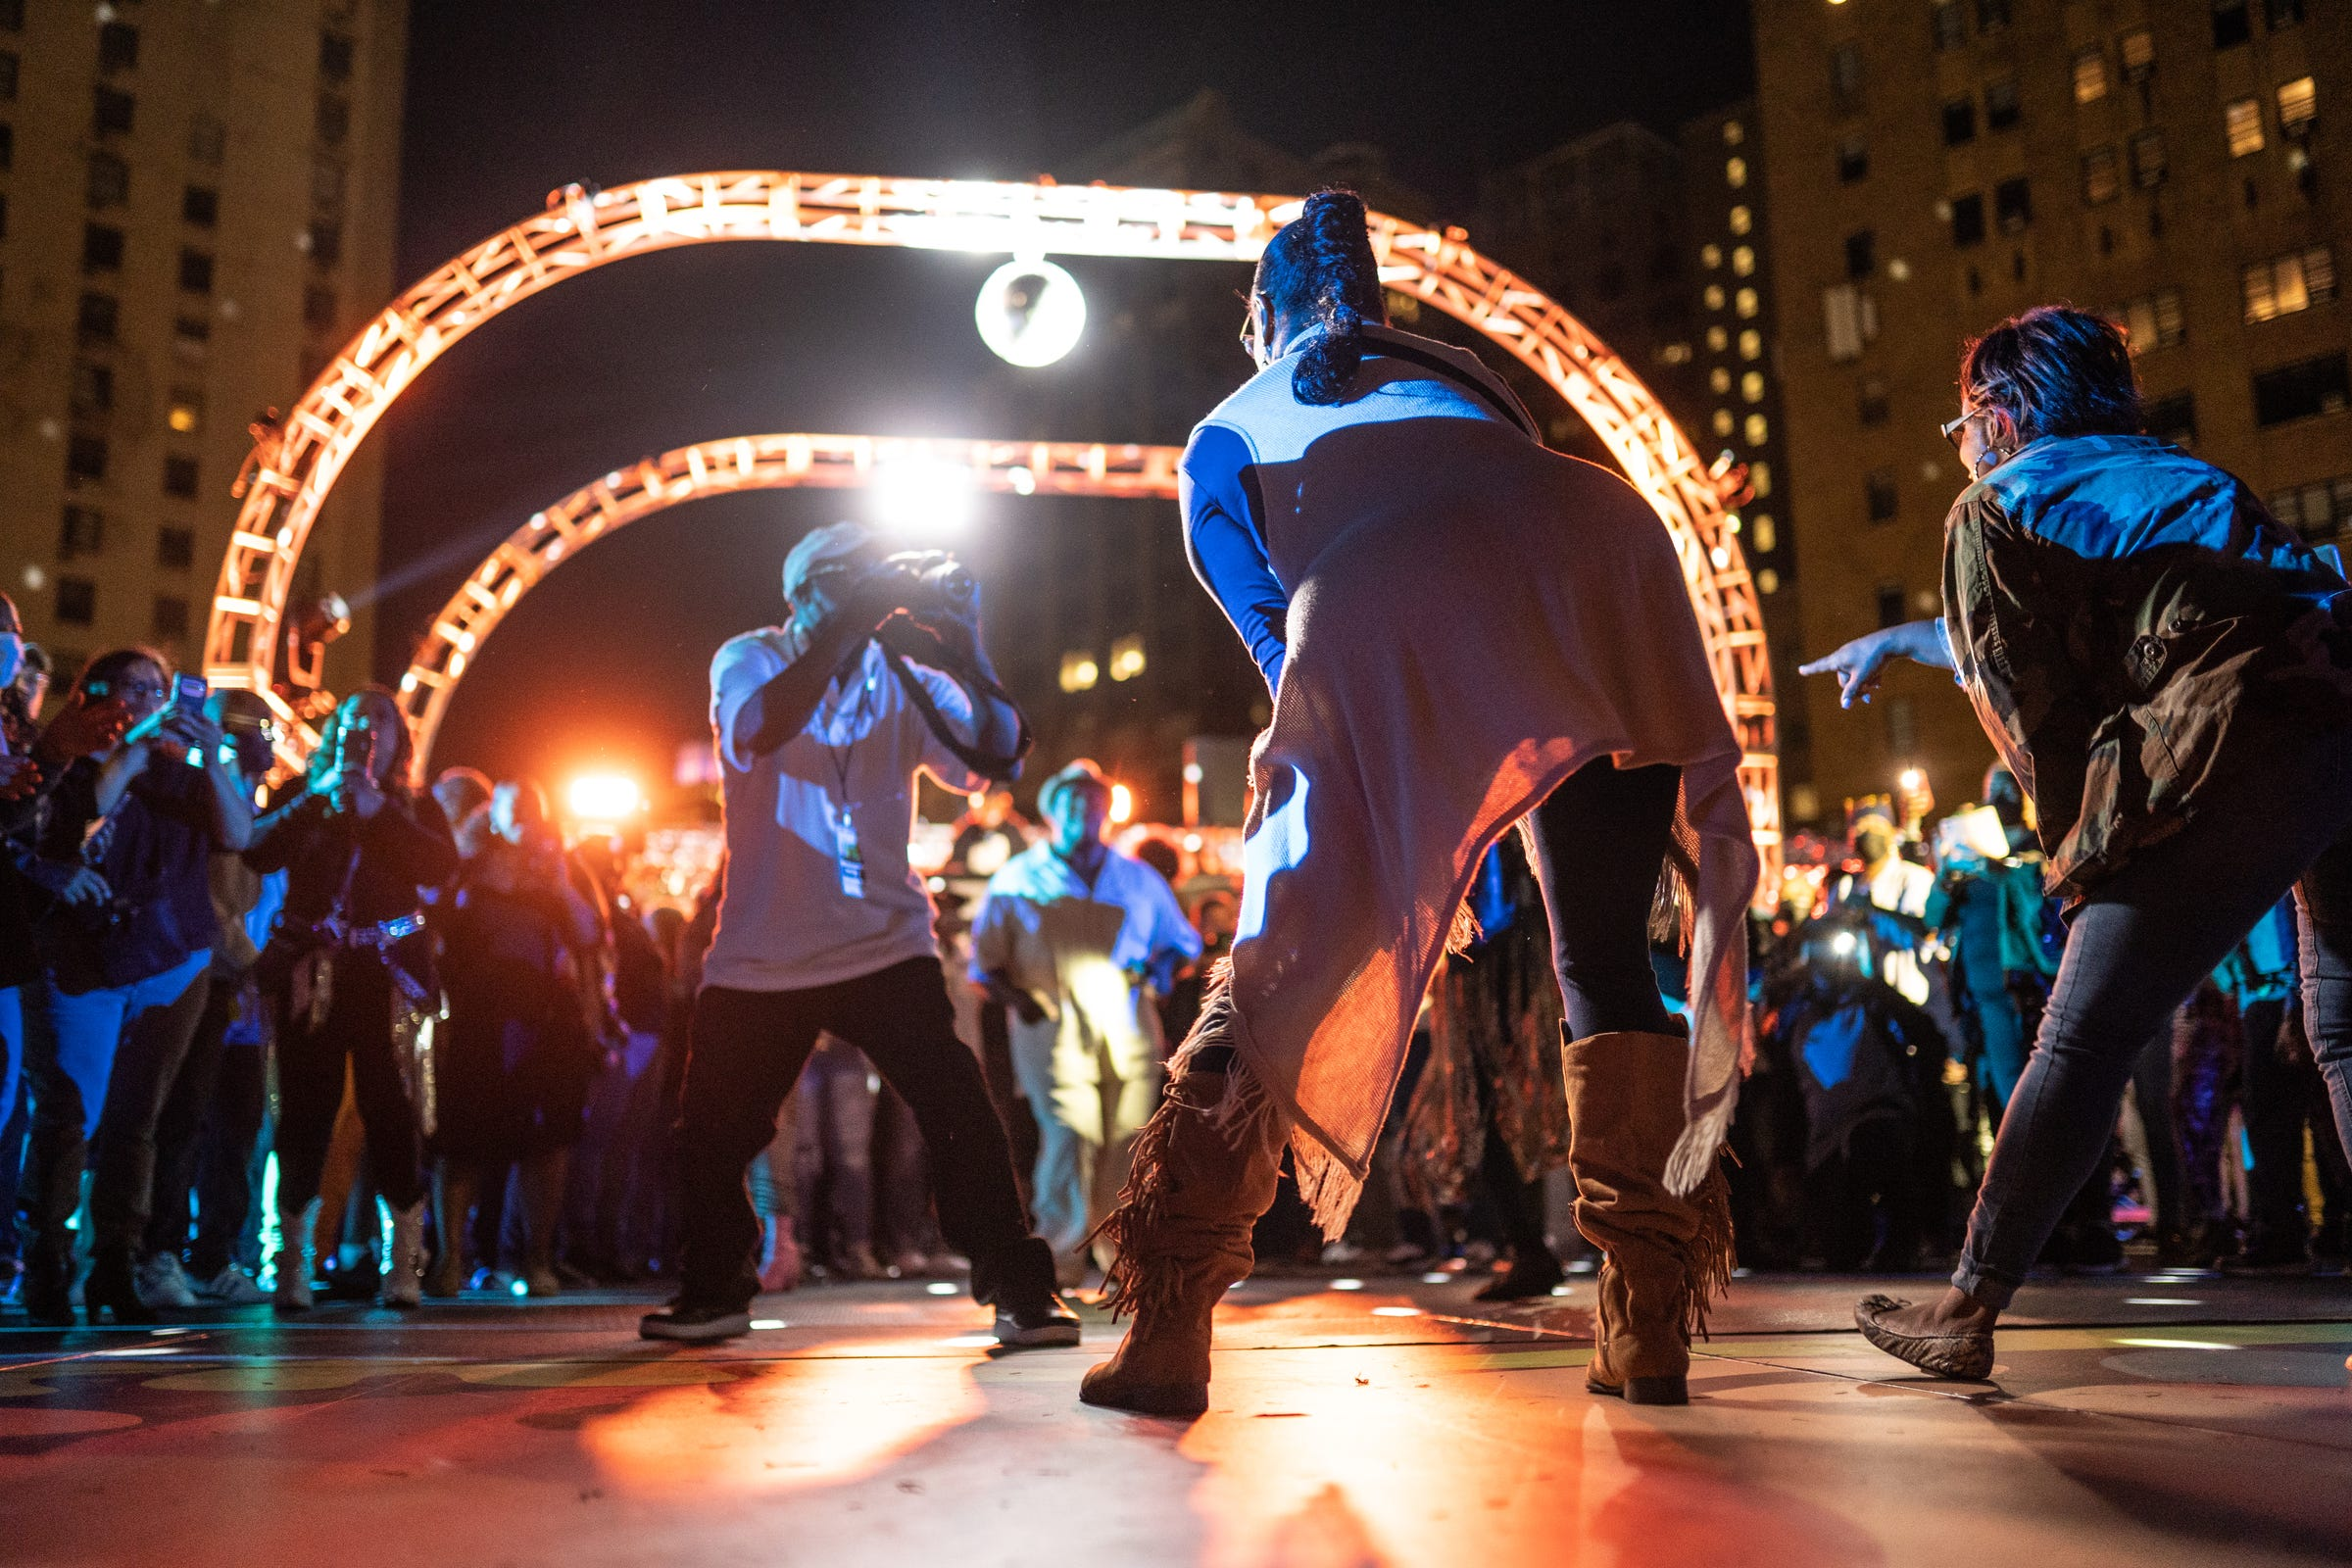 """People get their 30 seconds to shine while performing during a dance line as part of """"The Scene with Nat Morris and Friends"""" as part of the DLECTRICITY event at Beacon Park in downtown Detroit on September 24, 2021. The event featured former dancers from Detroit's historic daily dance show that aired on WGPR TV, the first African-American owned and operated television station licensed by the FCC in The United States from 1975-1987, taking part in an open dance floor. The Scene looked to attempt Detroit's longest dance line giving each dancer 30 seconds to keep it moving."""